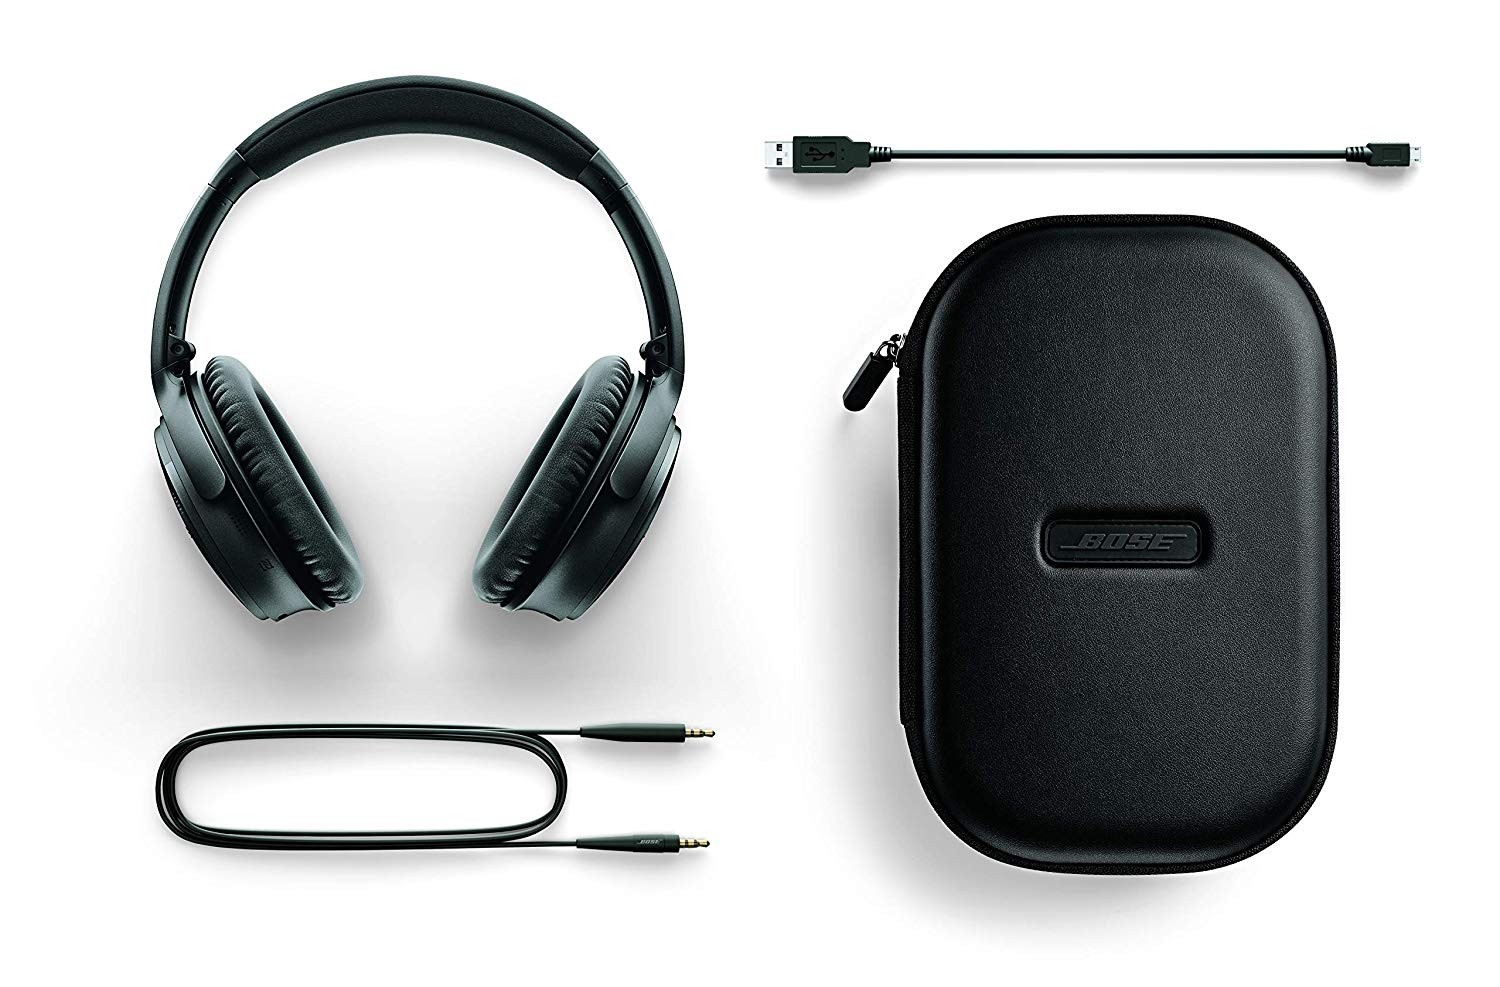 6db5ad8b1e1 image else for Bose QuietComfort 35 Wireless Headphones II, Bluetooth,  Noise Cancelling, Google. Zoom